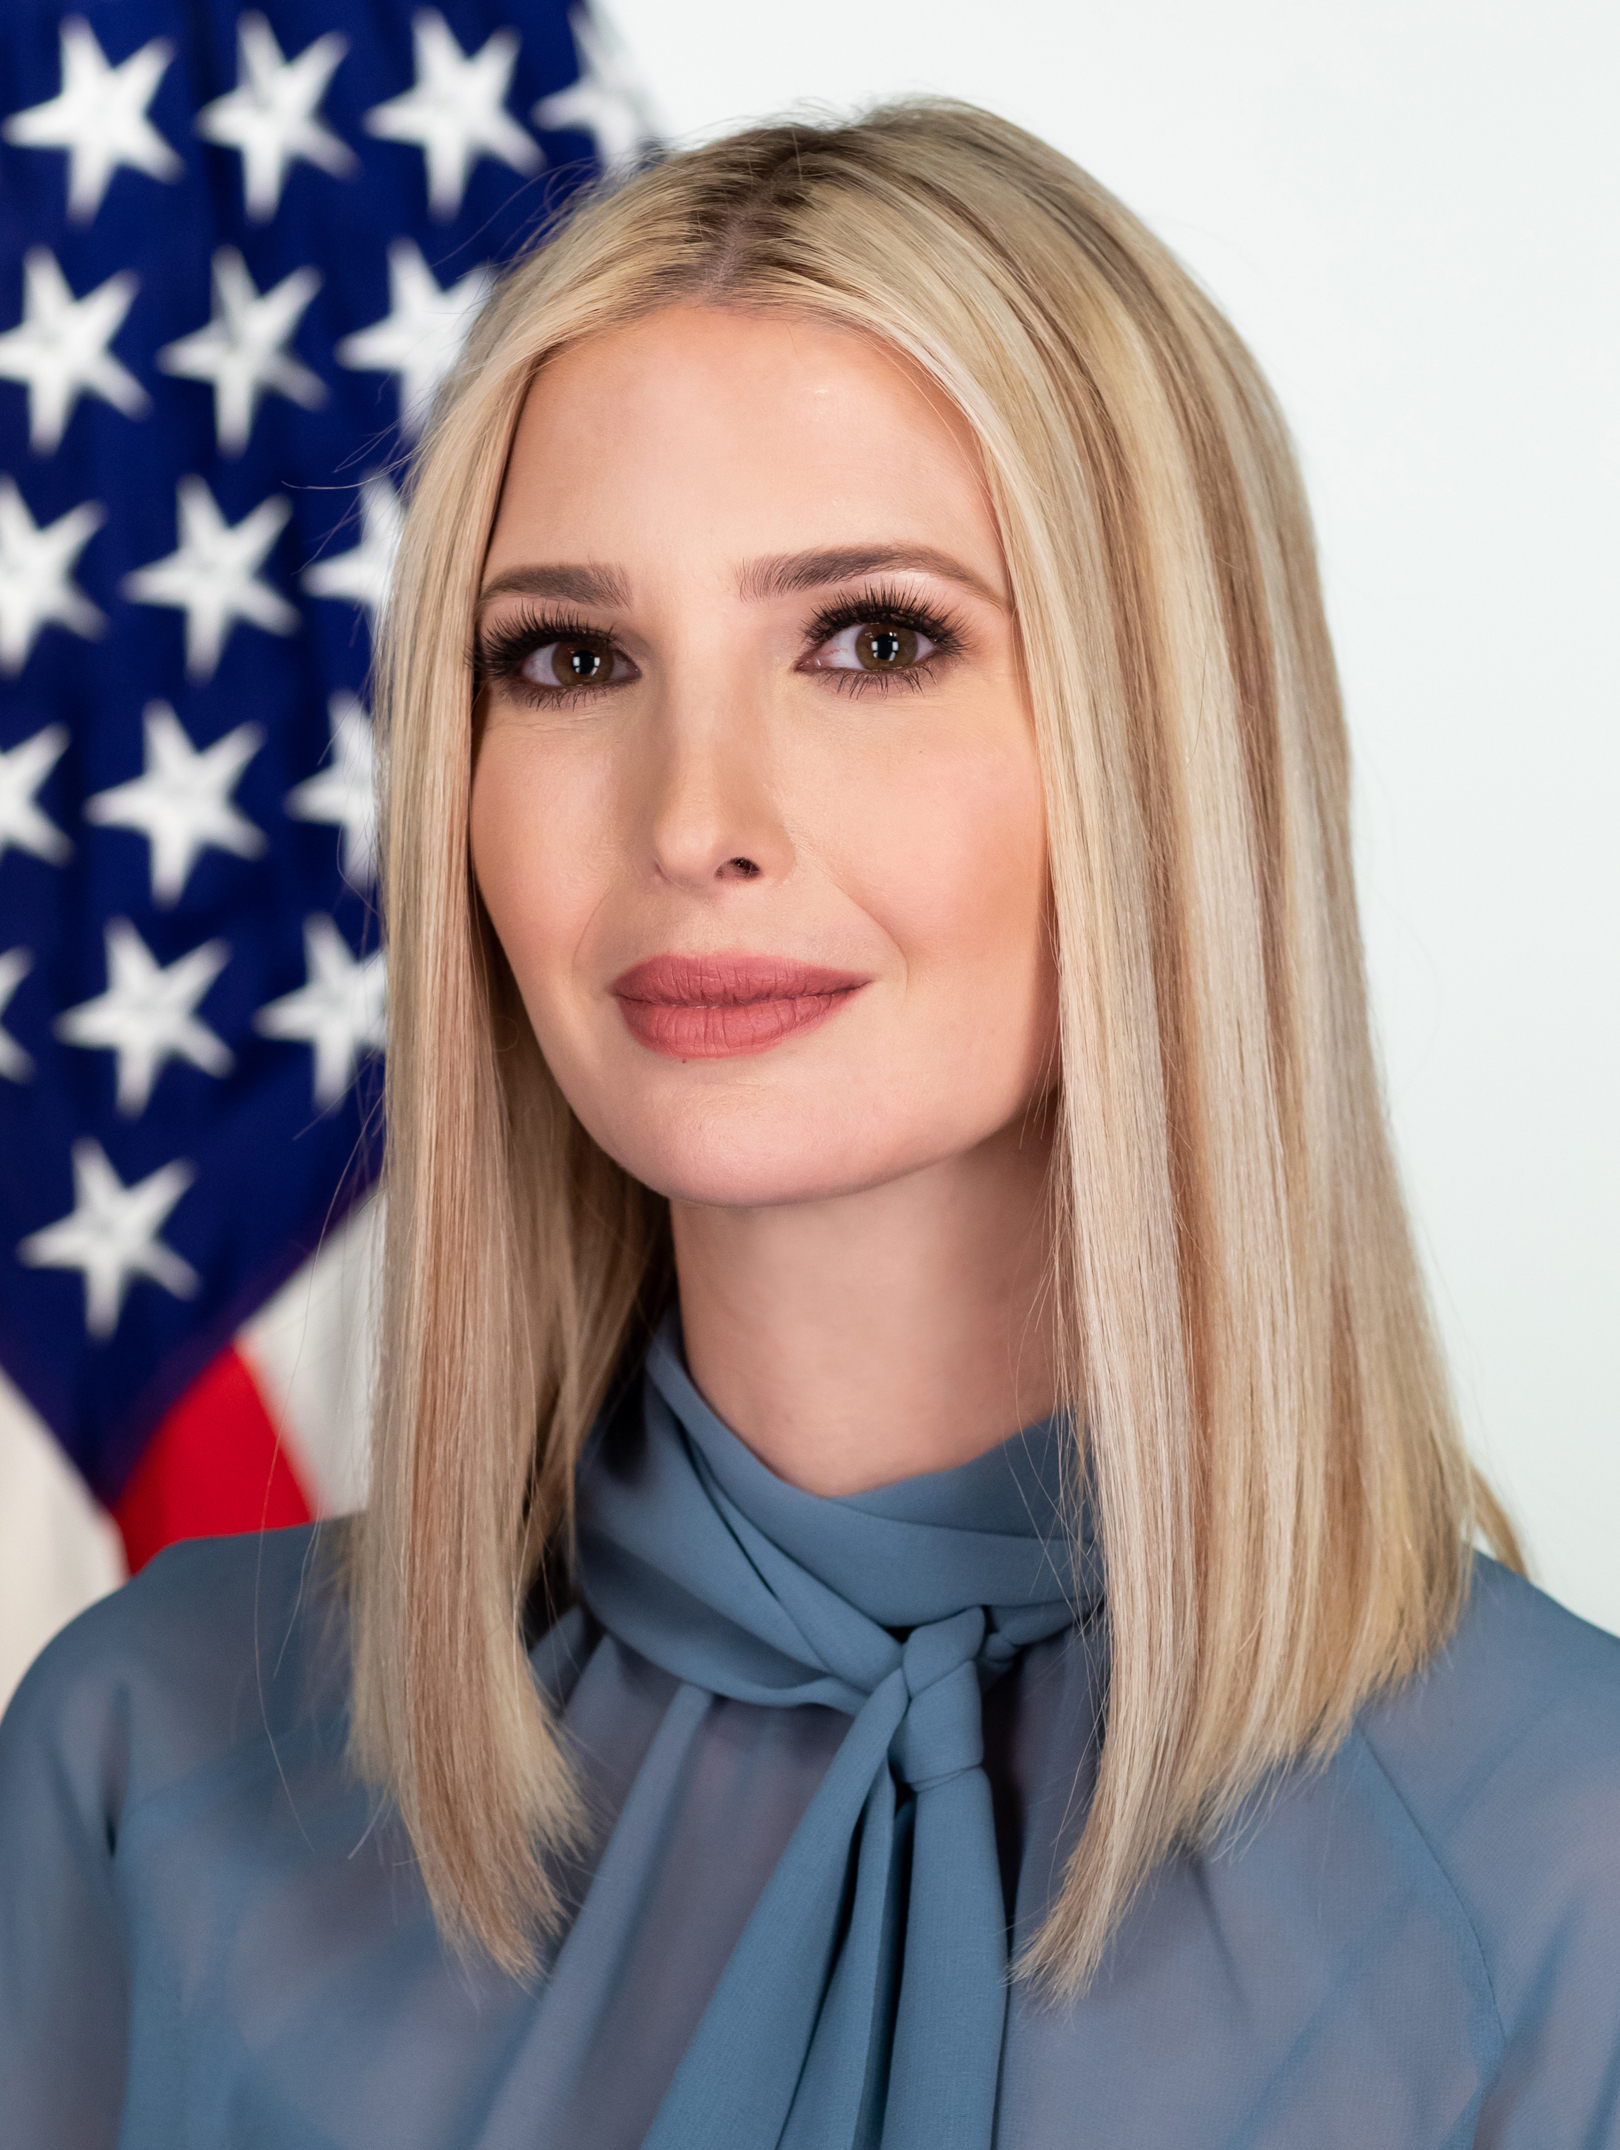 Ivanka Trump has an updated official portrait taken in the Eisenhower Executive Office Building of the White House Wednesday, Feb. 12, 2020. (Official White House Photo by Andrea Hanks)